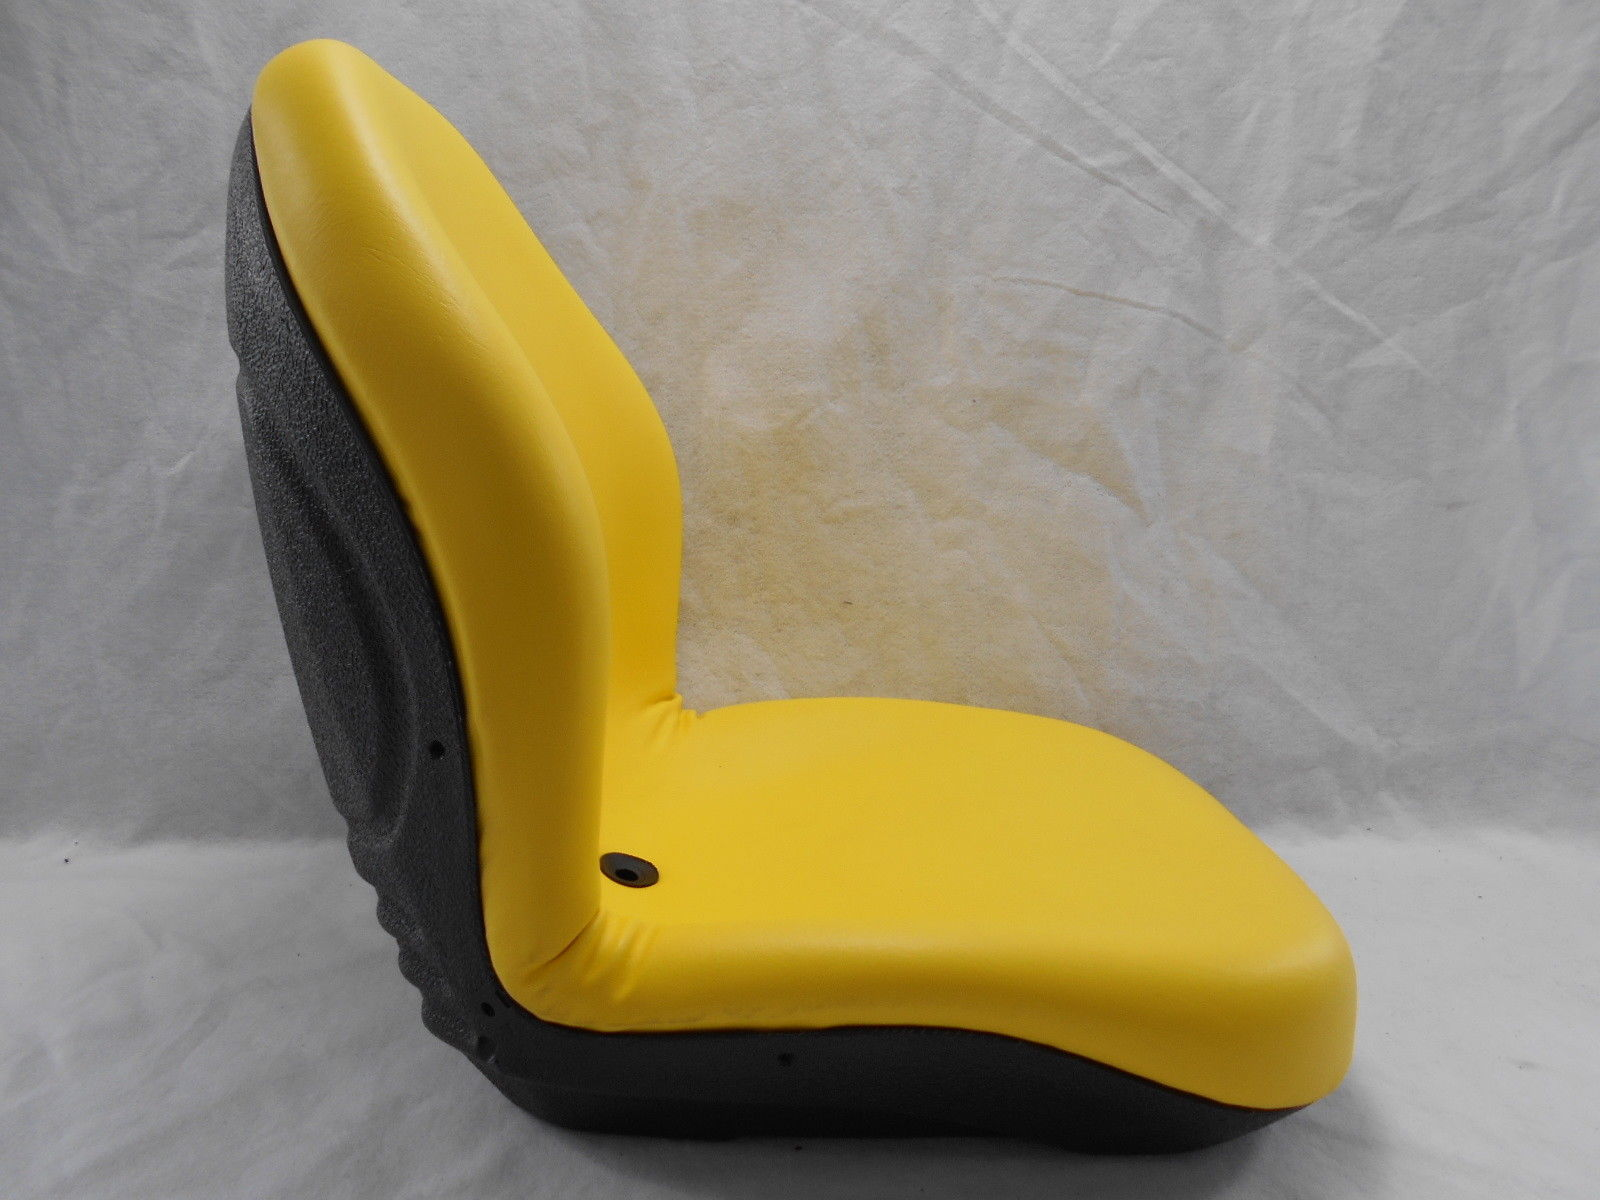 John Deere 445 Tractor Seats Replacement : John deere yellow seat w bracket